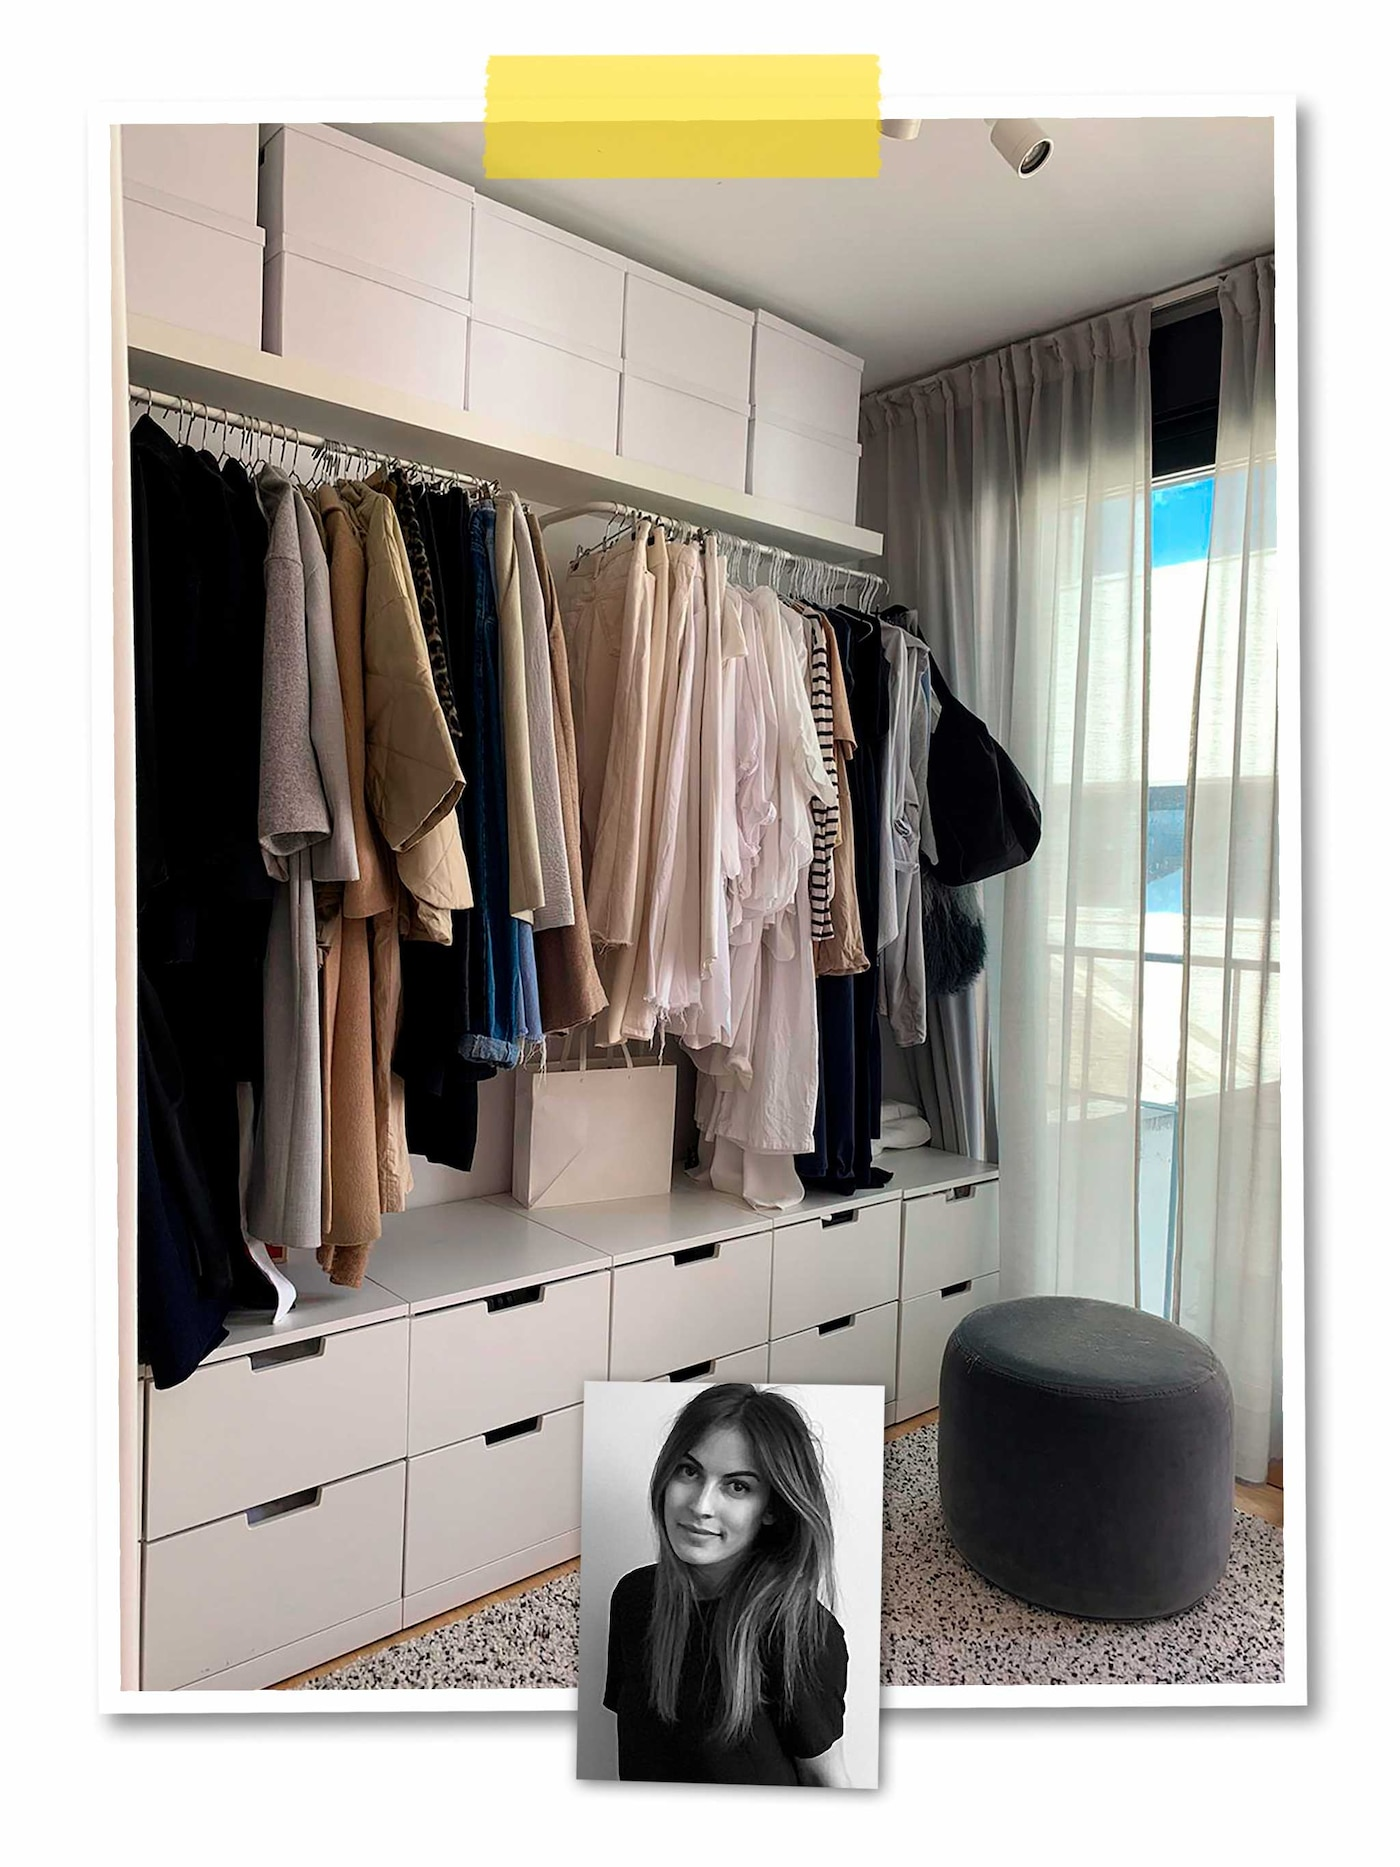 A two-image collage: a wall-wide wardrobe with a combination of open and closed storage, and an image of an IKEA co-worker.